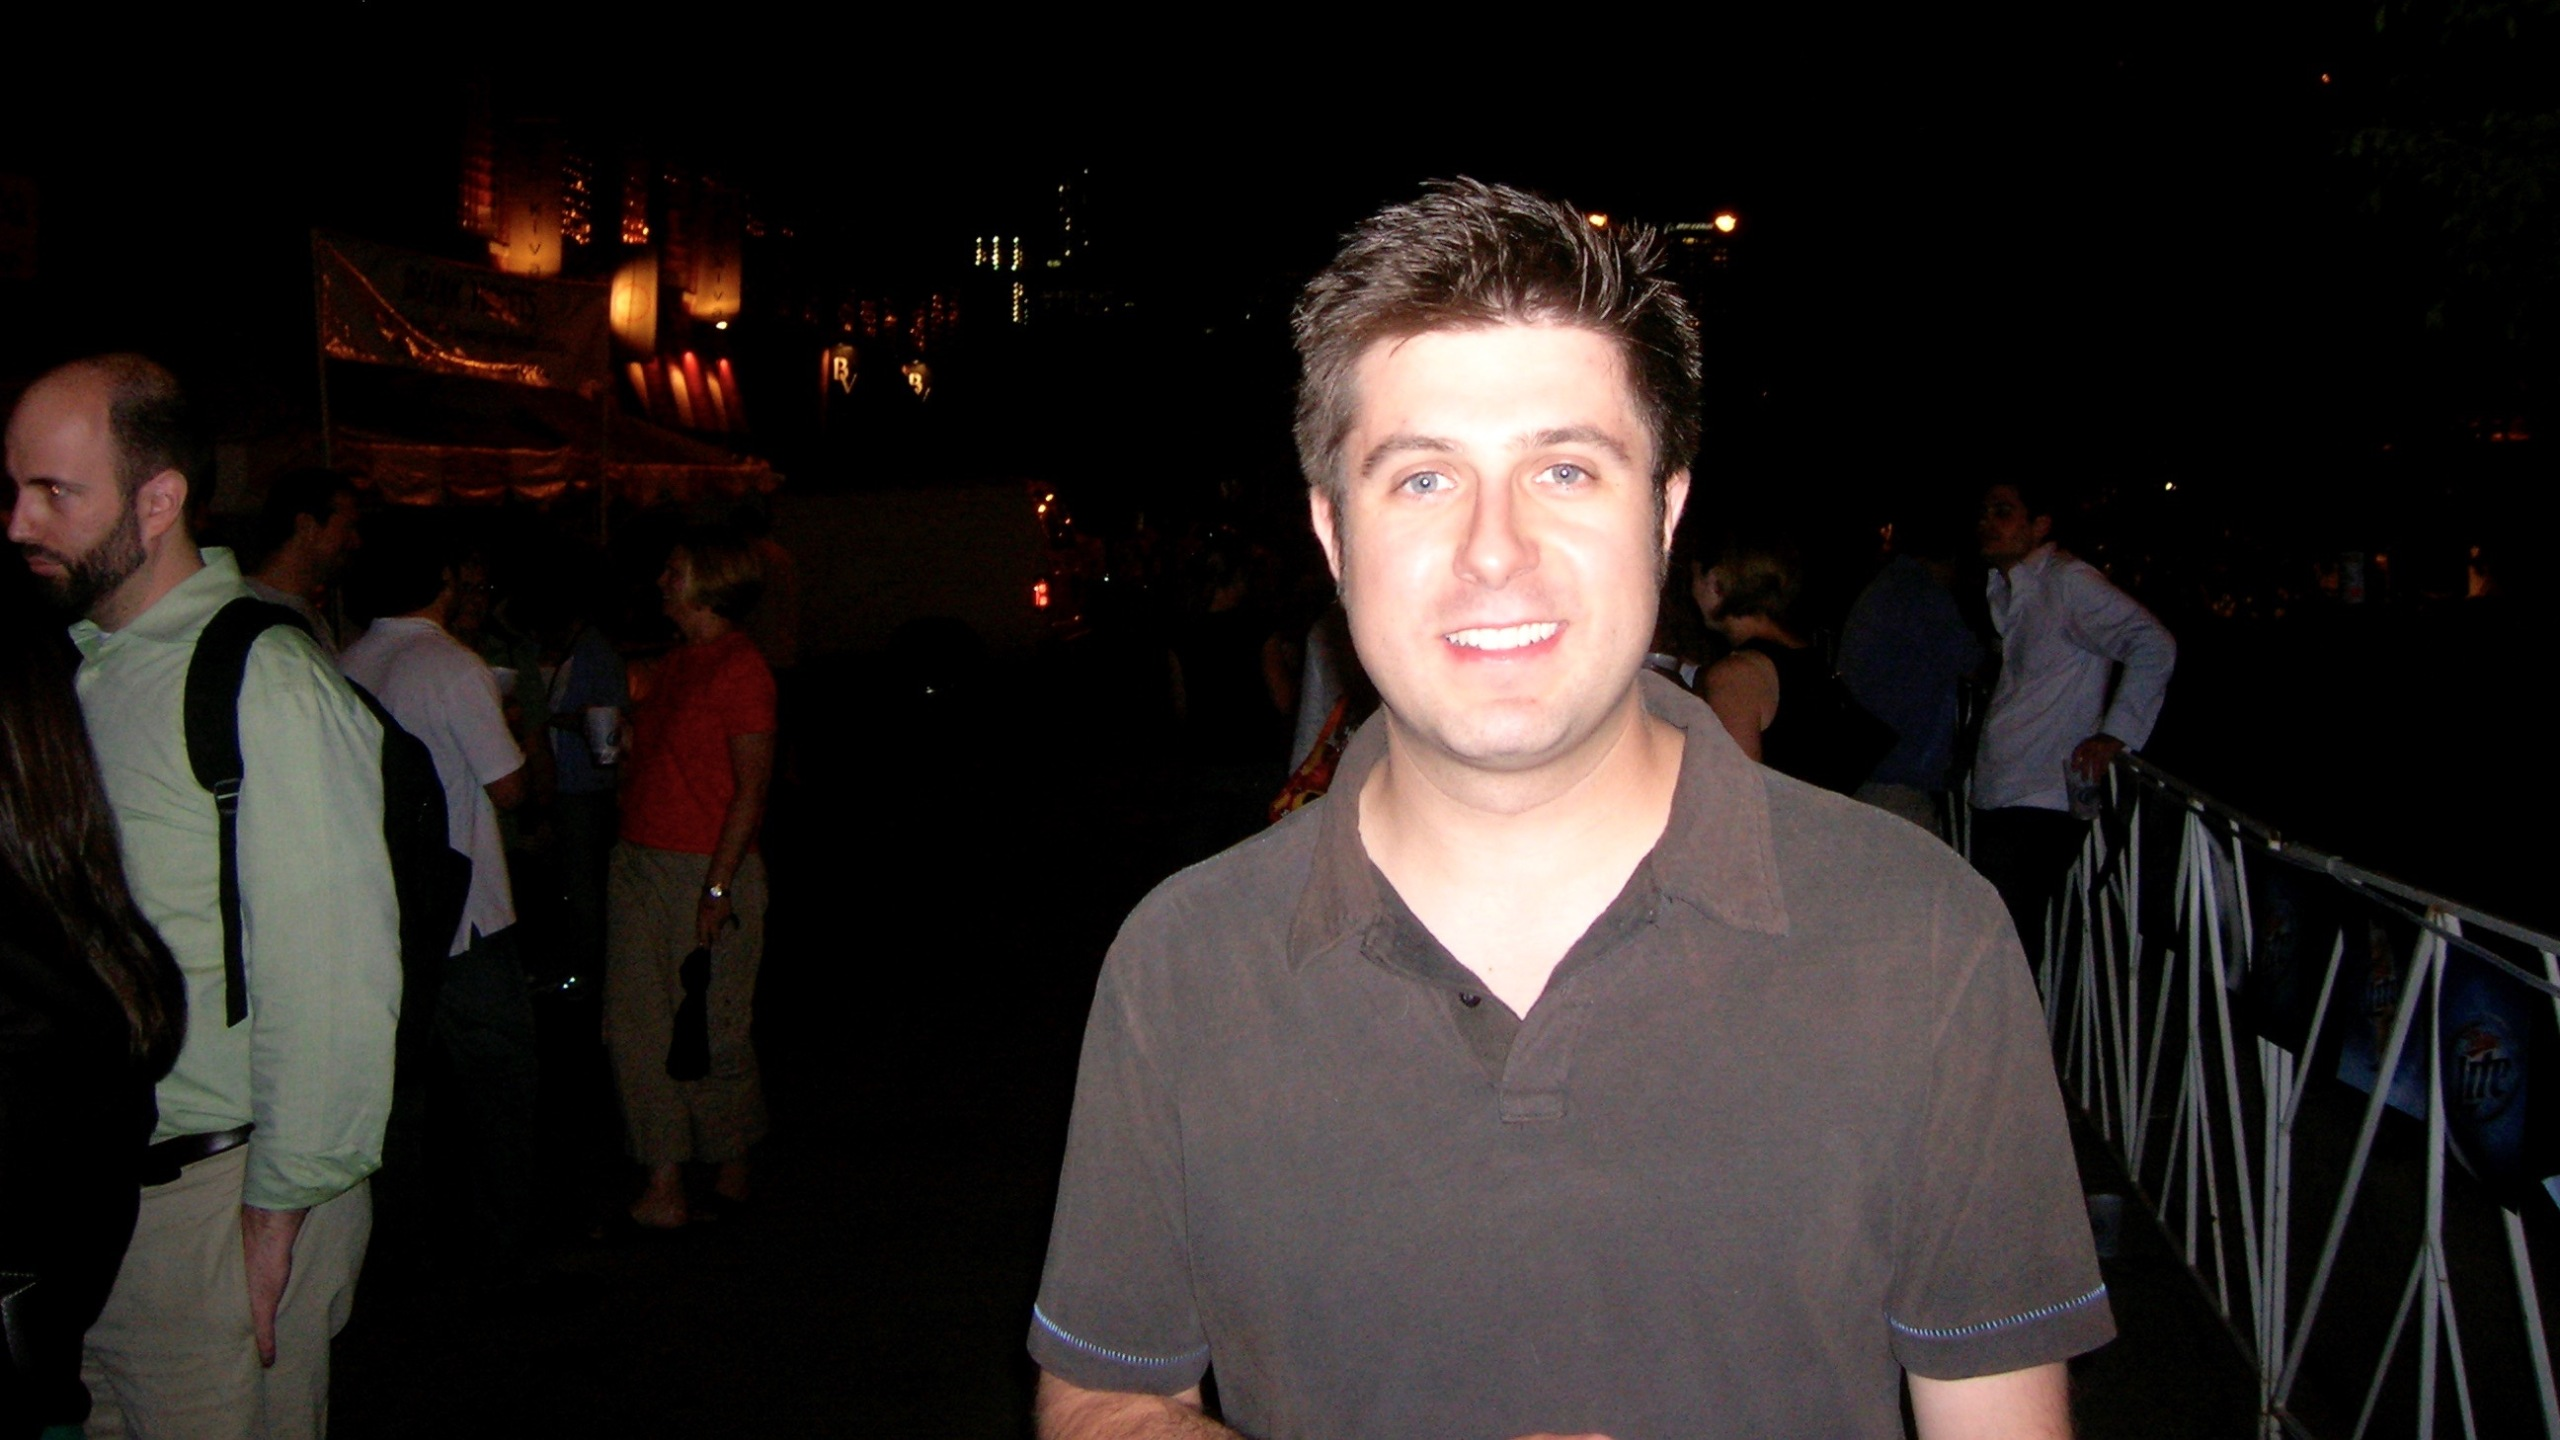 OTL host Mike Stephen may or may not have paid the donation at the gate to enter the Taste of Randolph festival back in 2008.